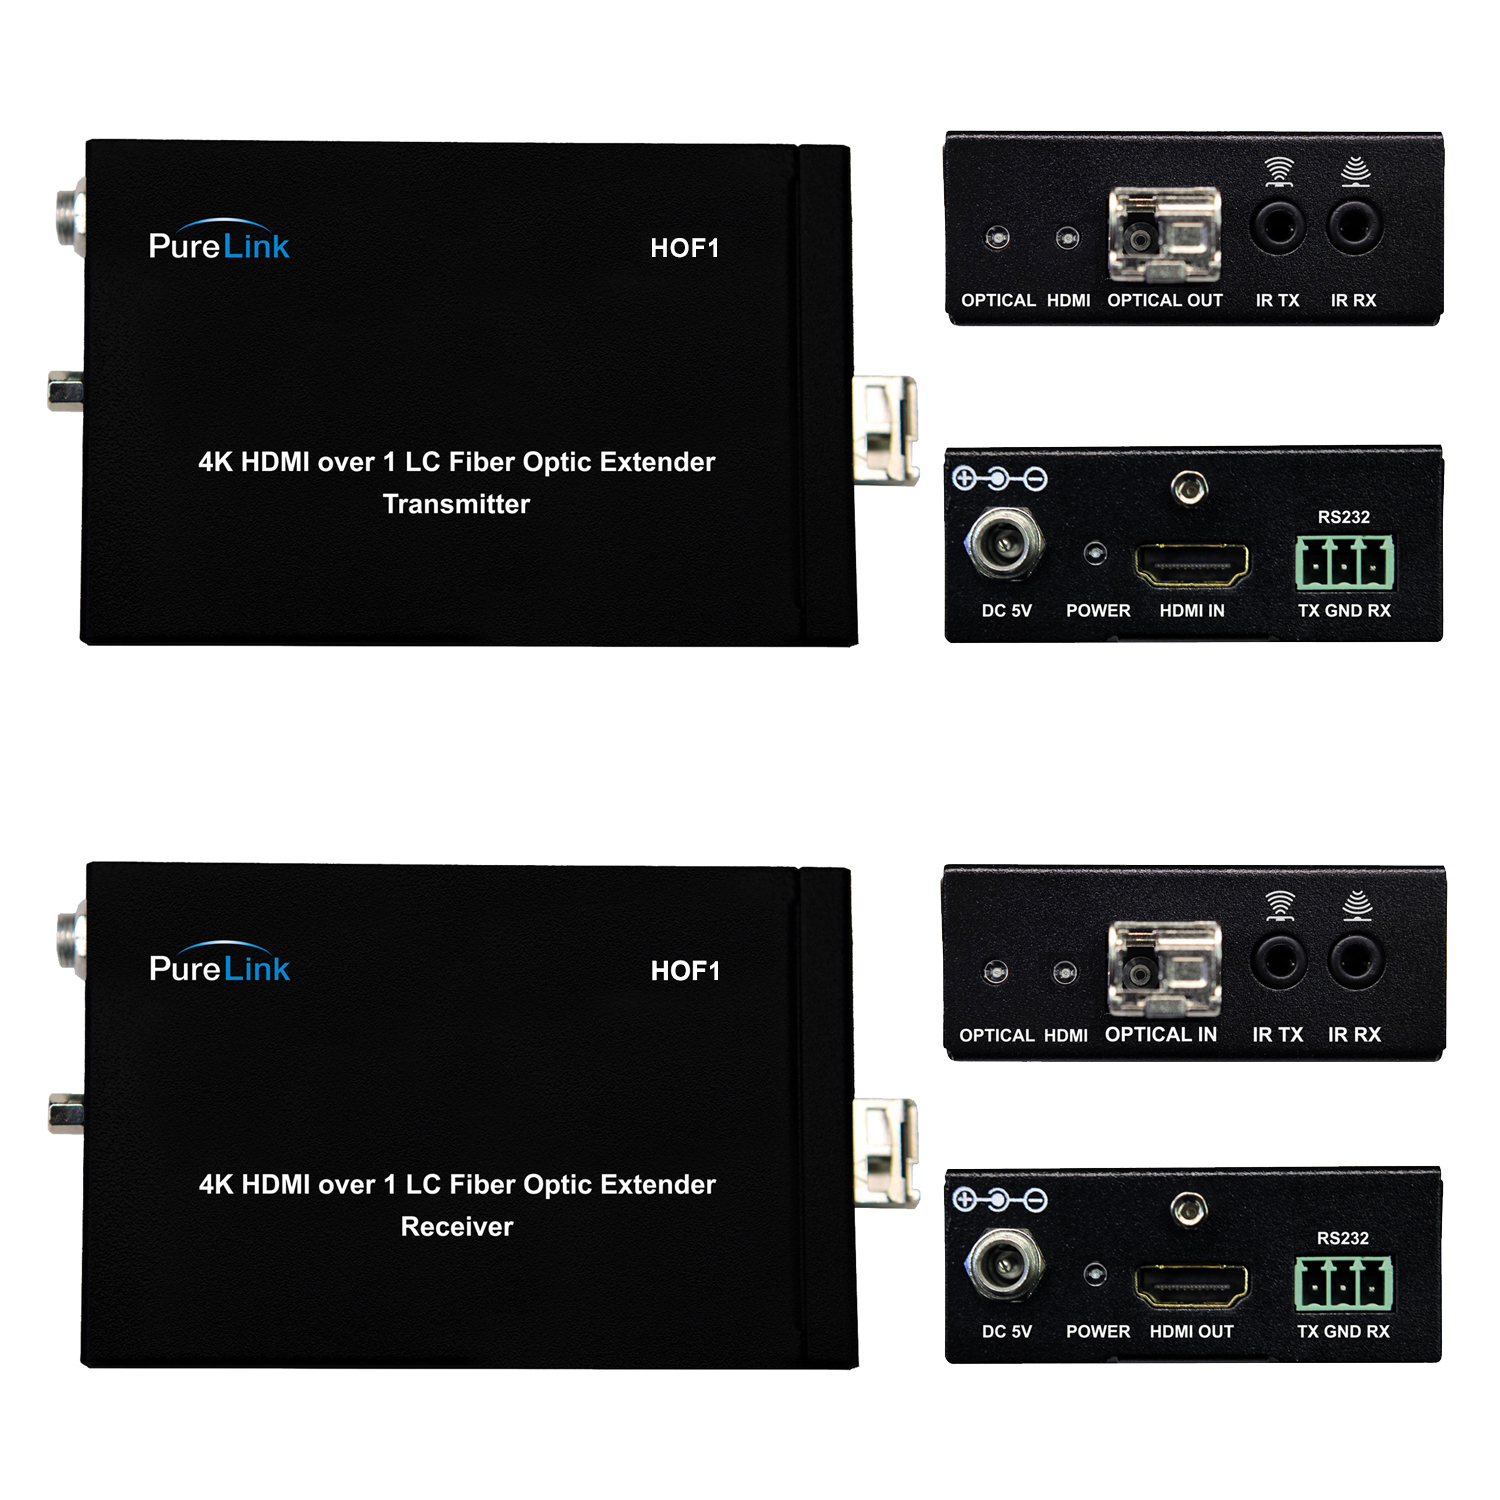 HOF1 Tx/Rx Ultra HD/4K HDMI over One Fiber Extension System